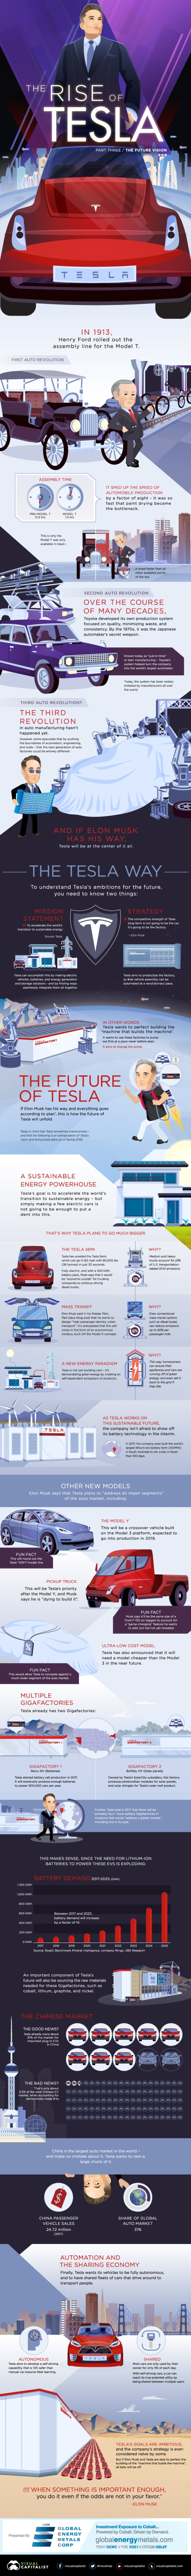 tesla-Part 3 -vision-infographic